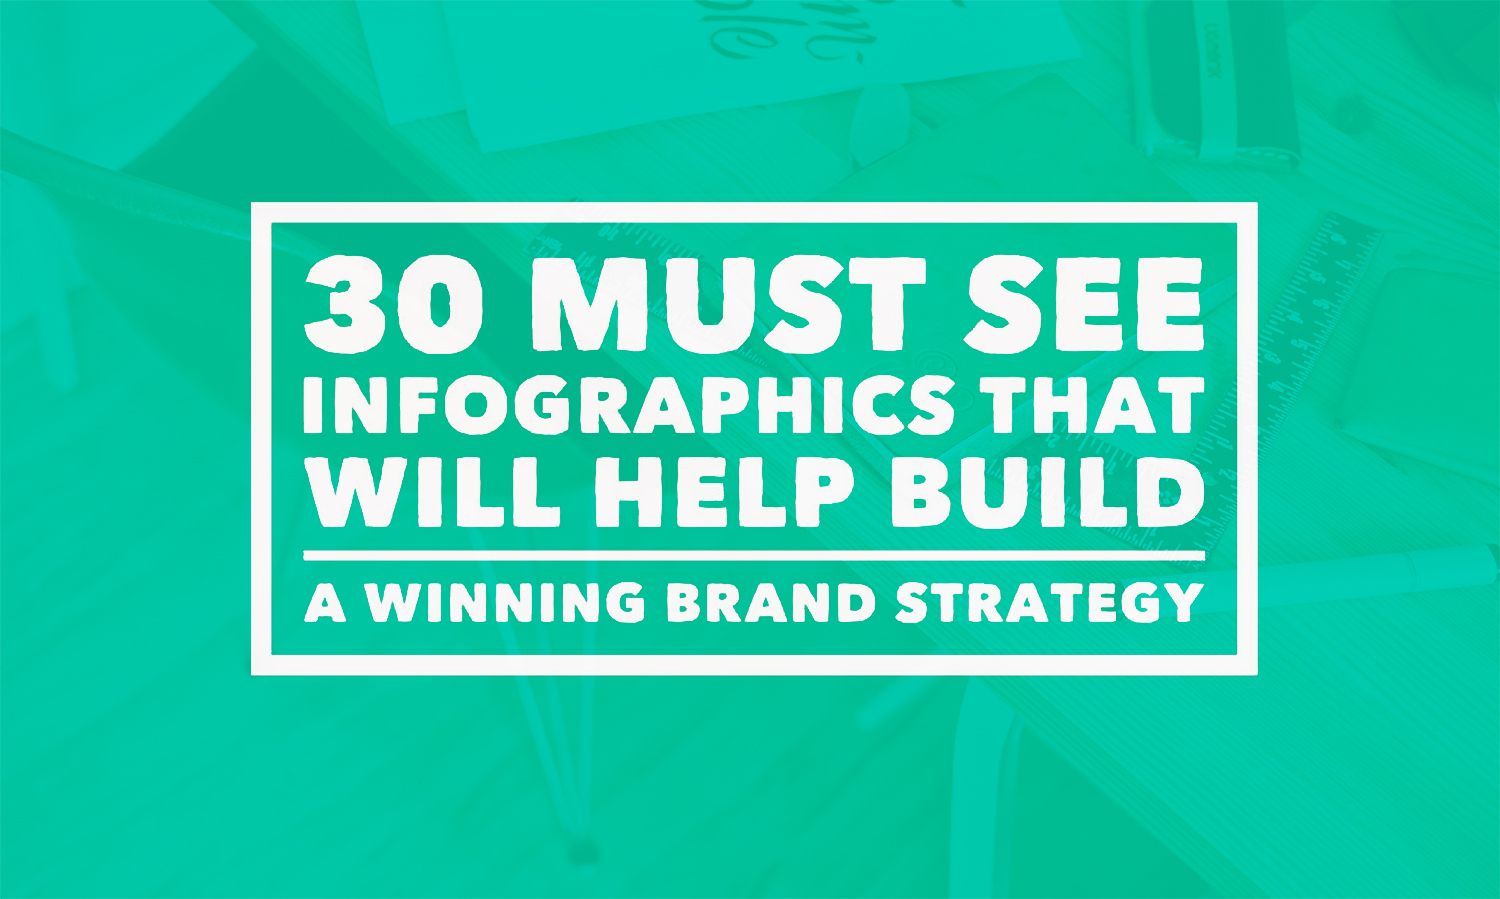 30-must-see-infographics-that-will-help-build-your-brand-strategy